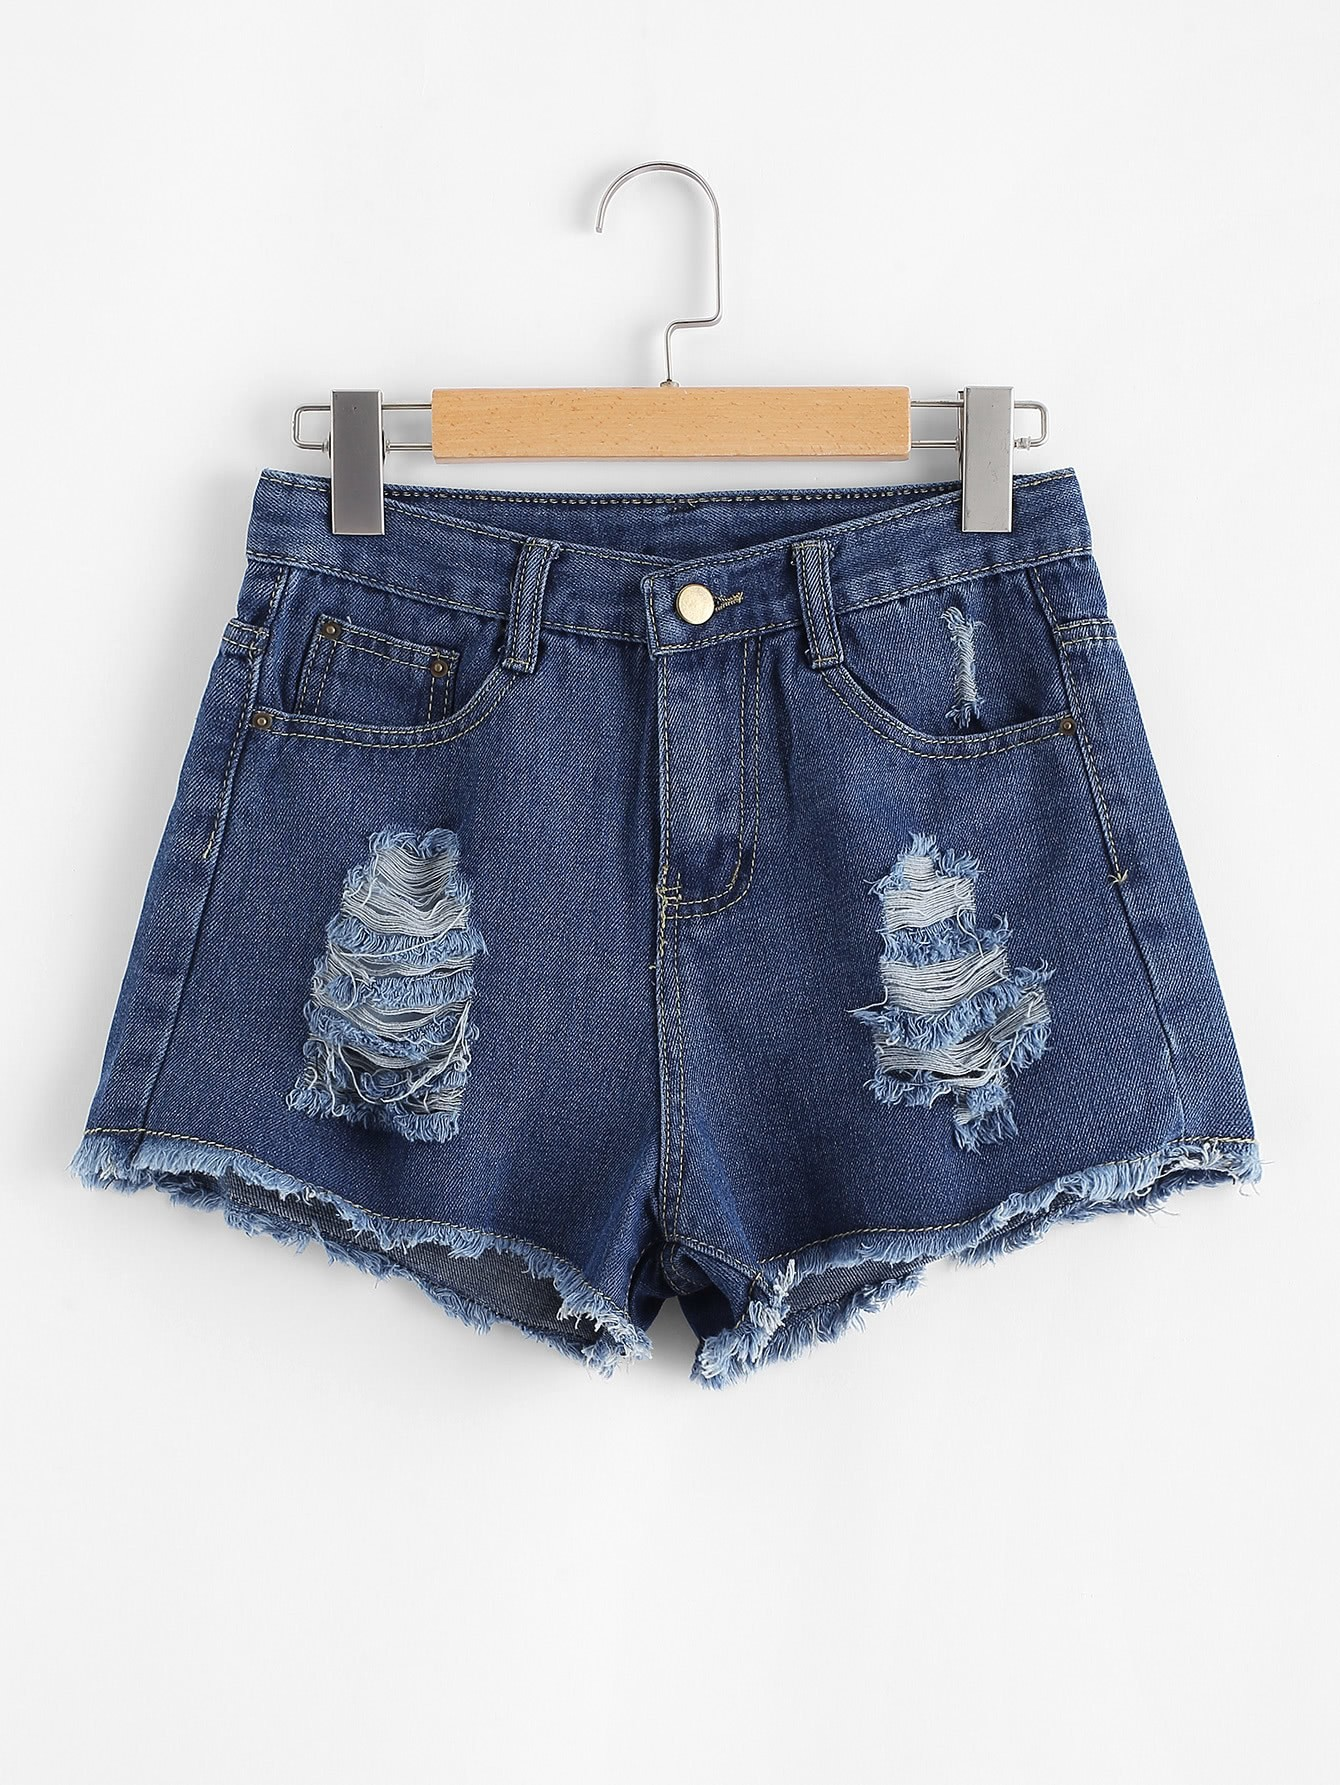 Raw Hem Ripeed Denim Shorts raw hem ripeed denim shorts